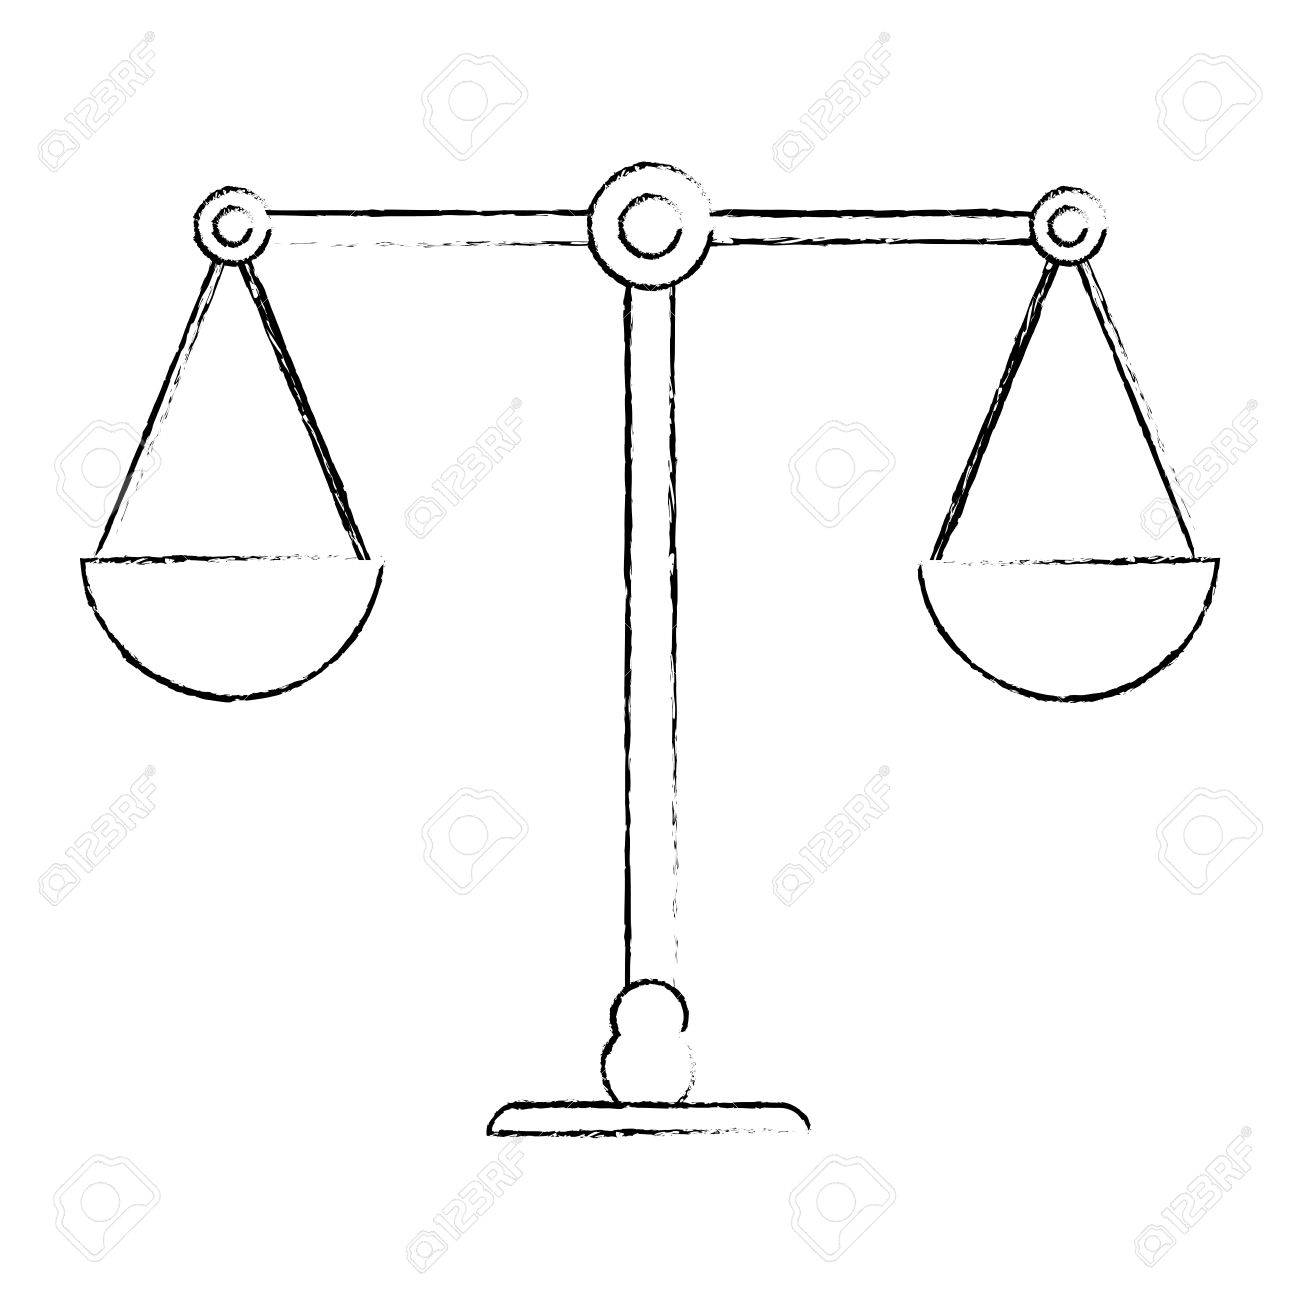 1300x1300 Balance Justice Equality Image Sketch Vector Illustration Eps